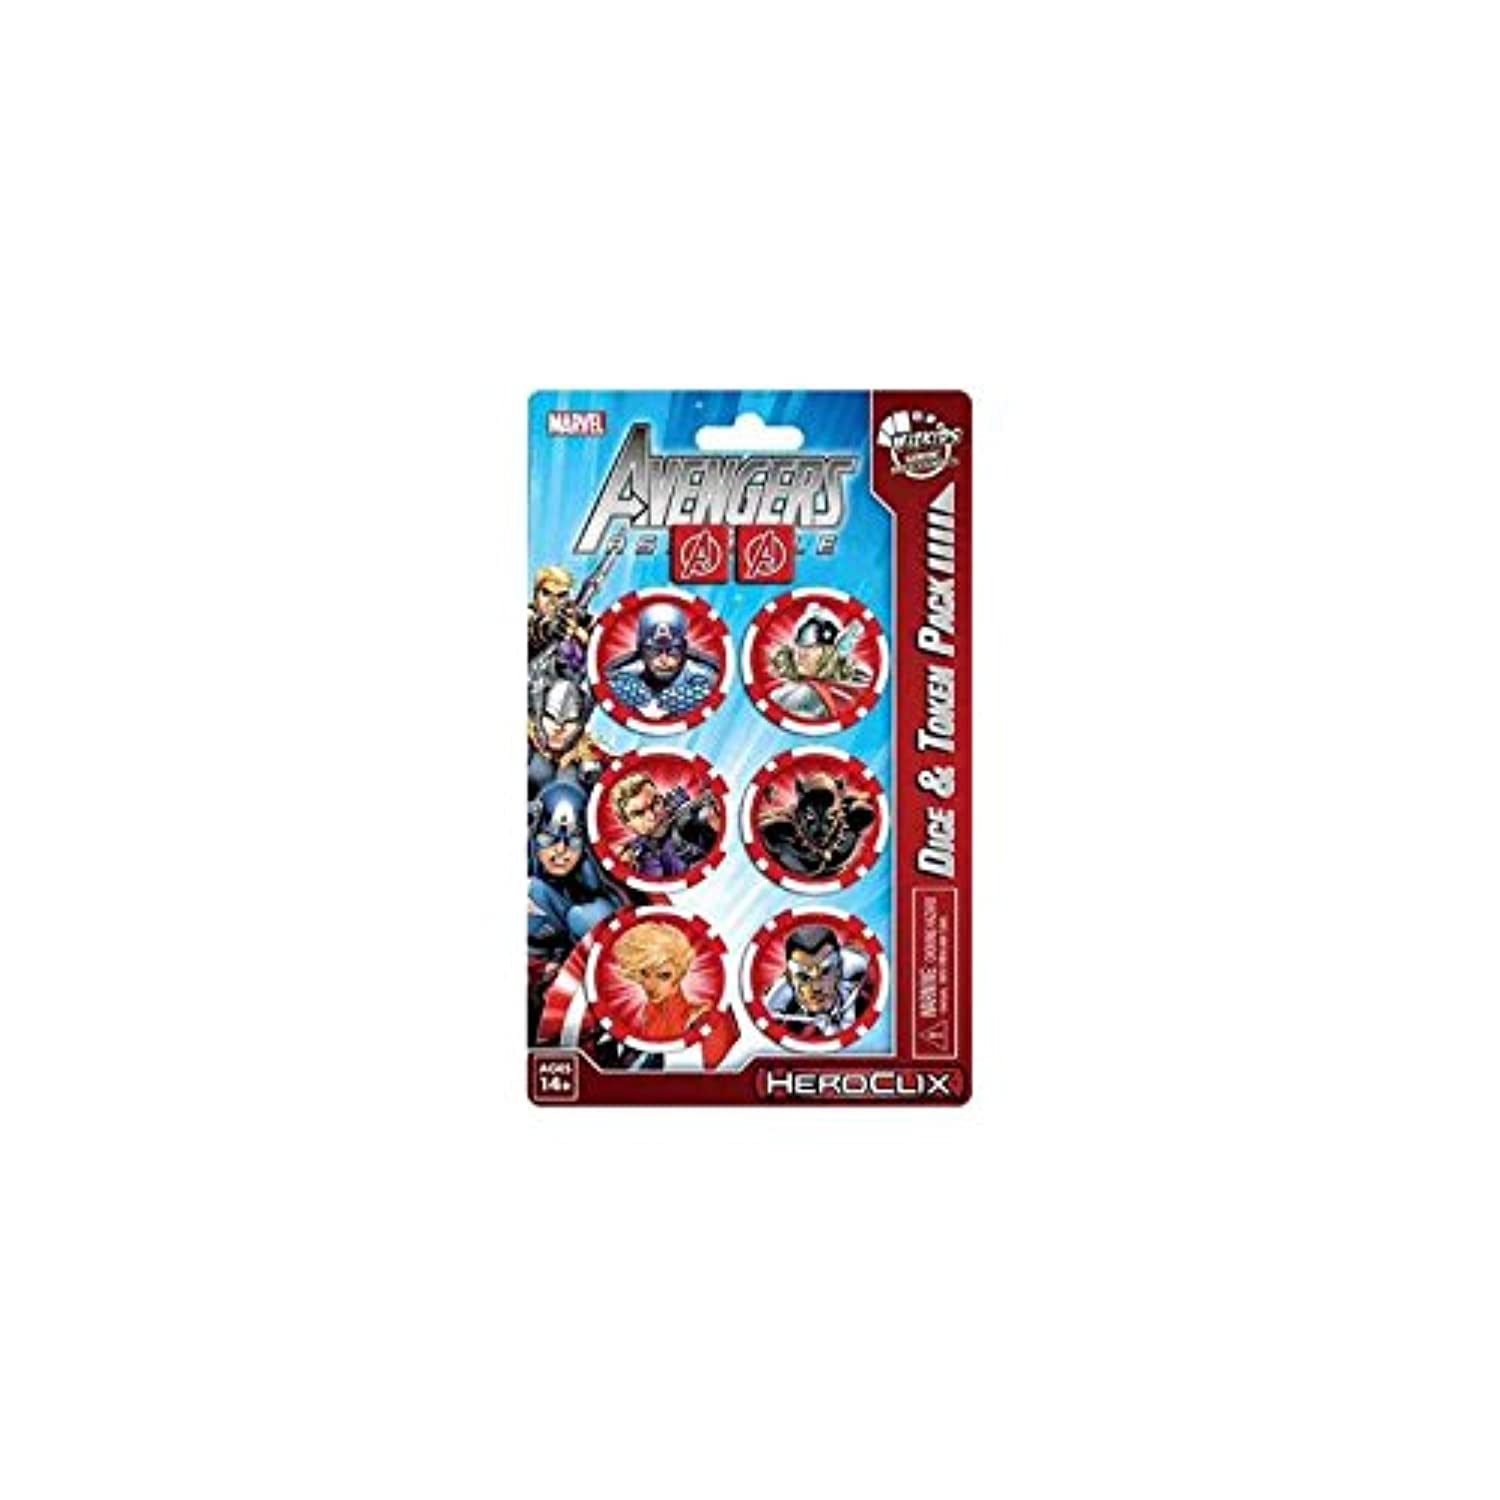 Marvel HeroClix: Avengers Assemble Dice and Token Pack - Captain America